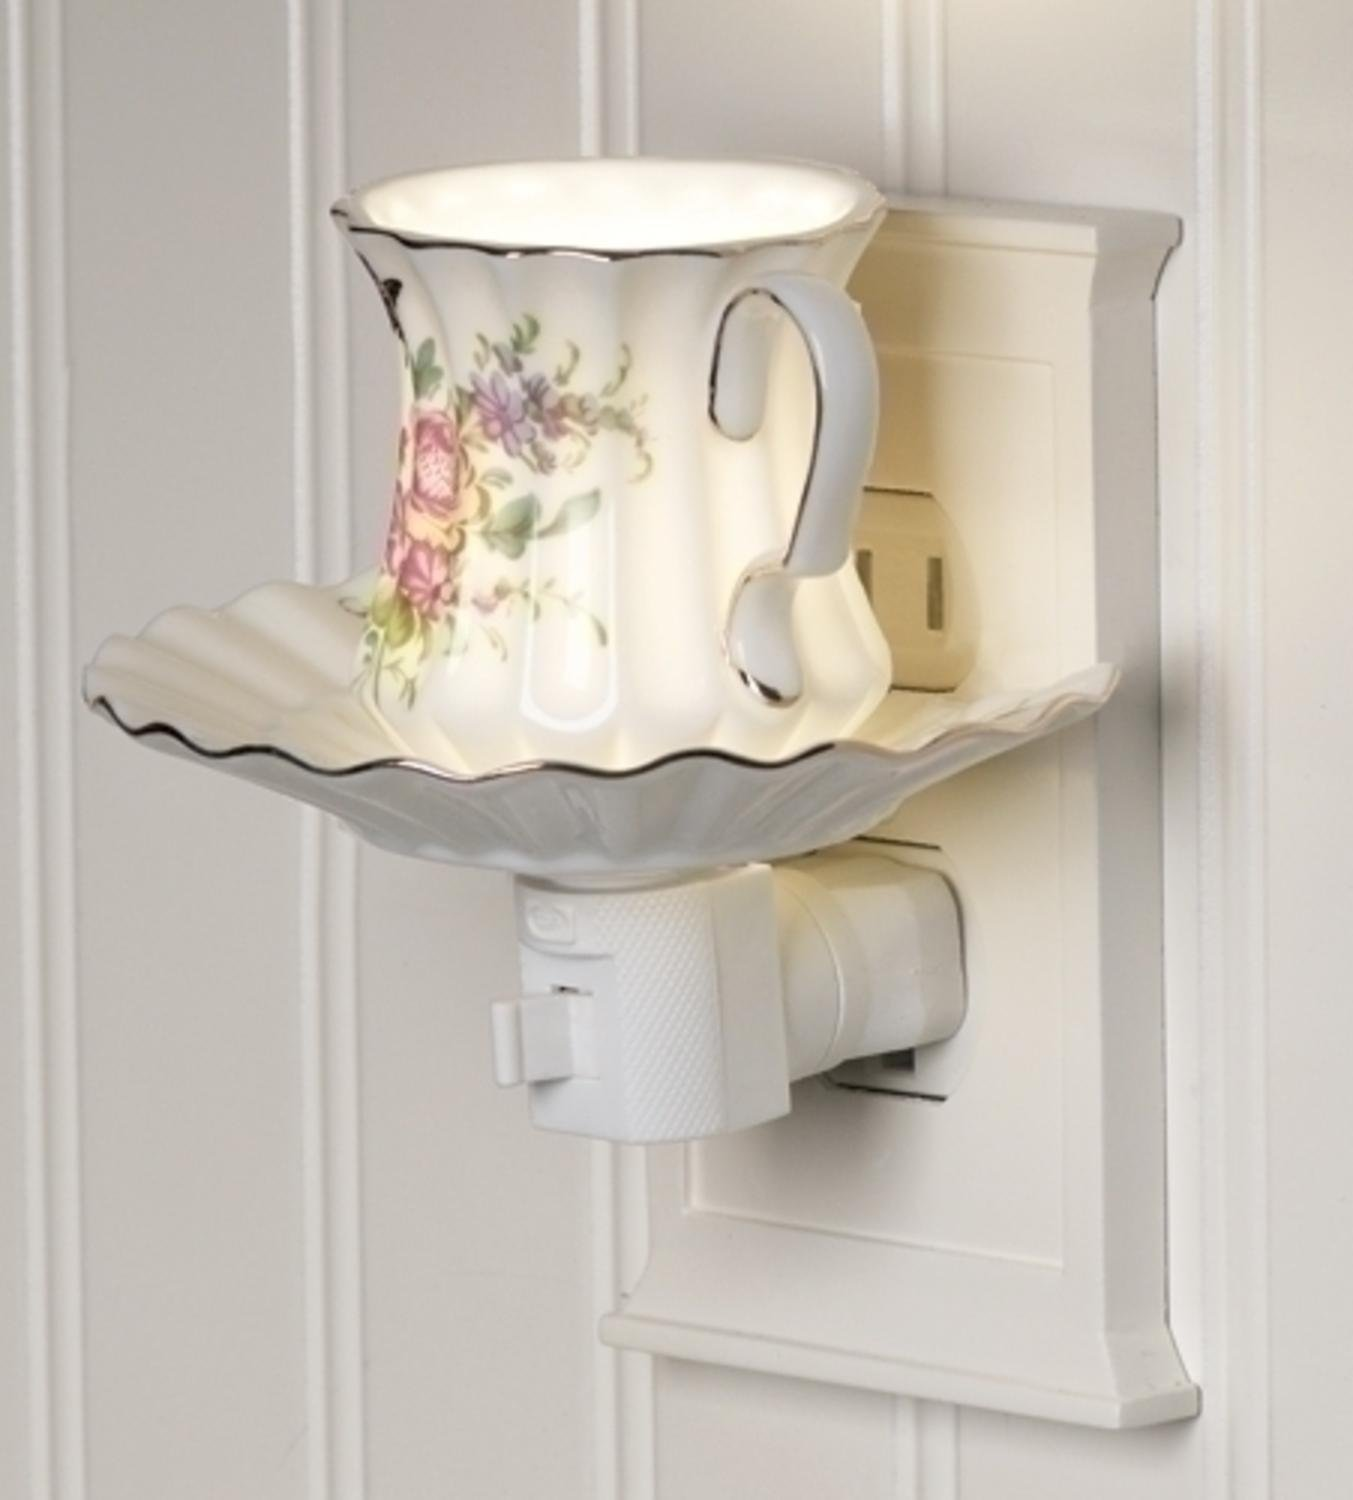 Rose Flower Tea Cup and Saucer Ceramic Night Light Image